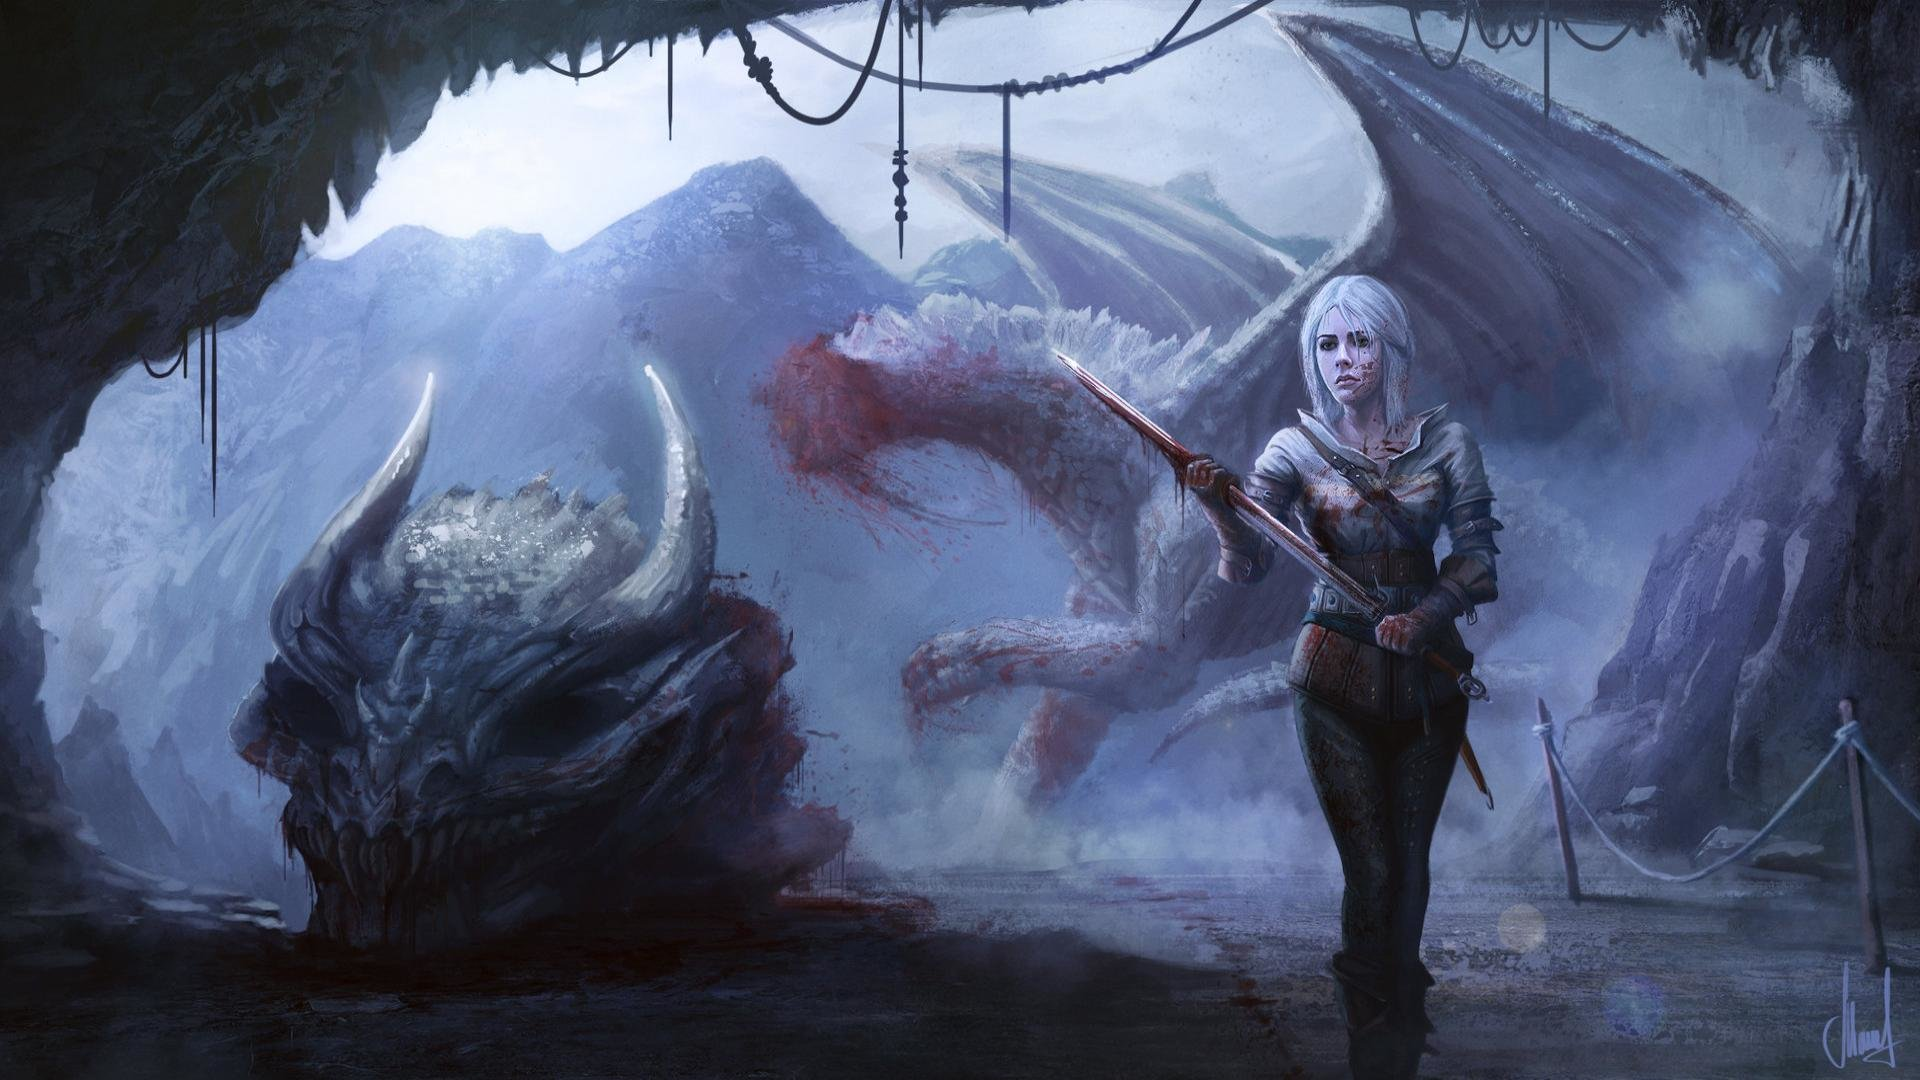 Free Download The Witcher 3 Wild Hunt Wallpaper Id 18011 Full Hd